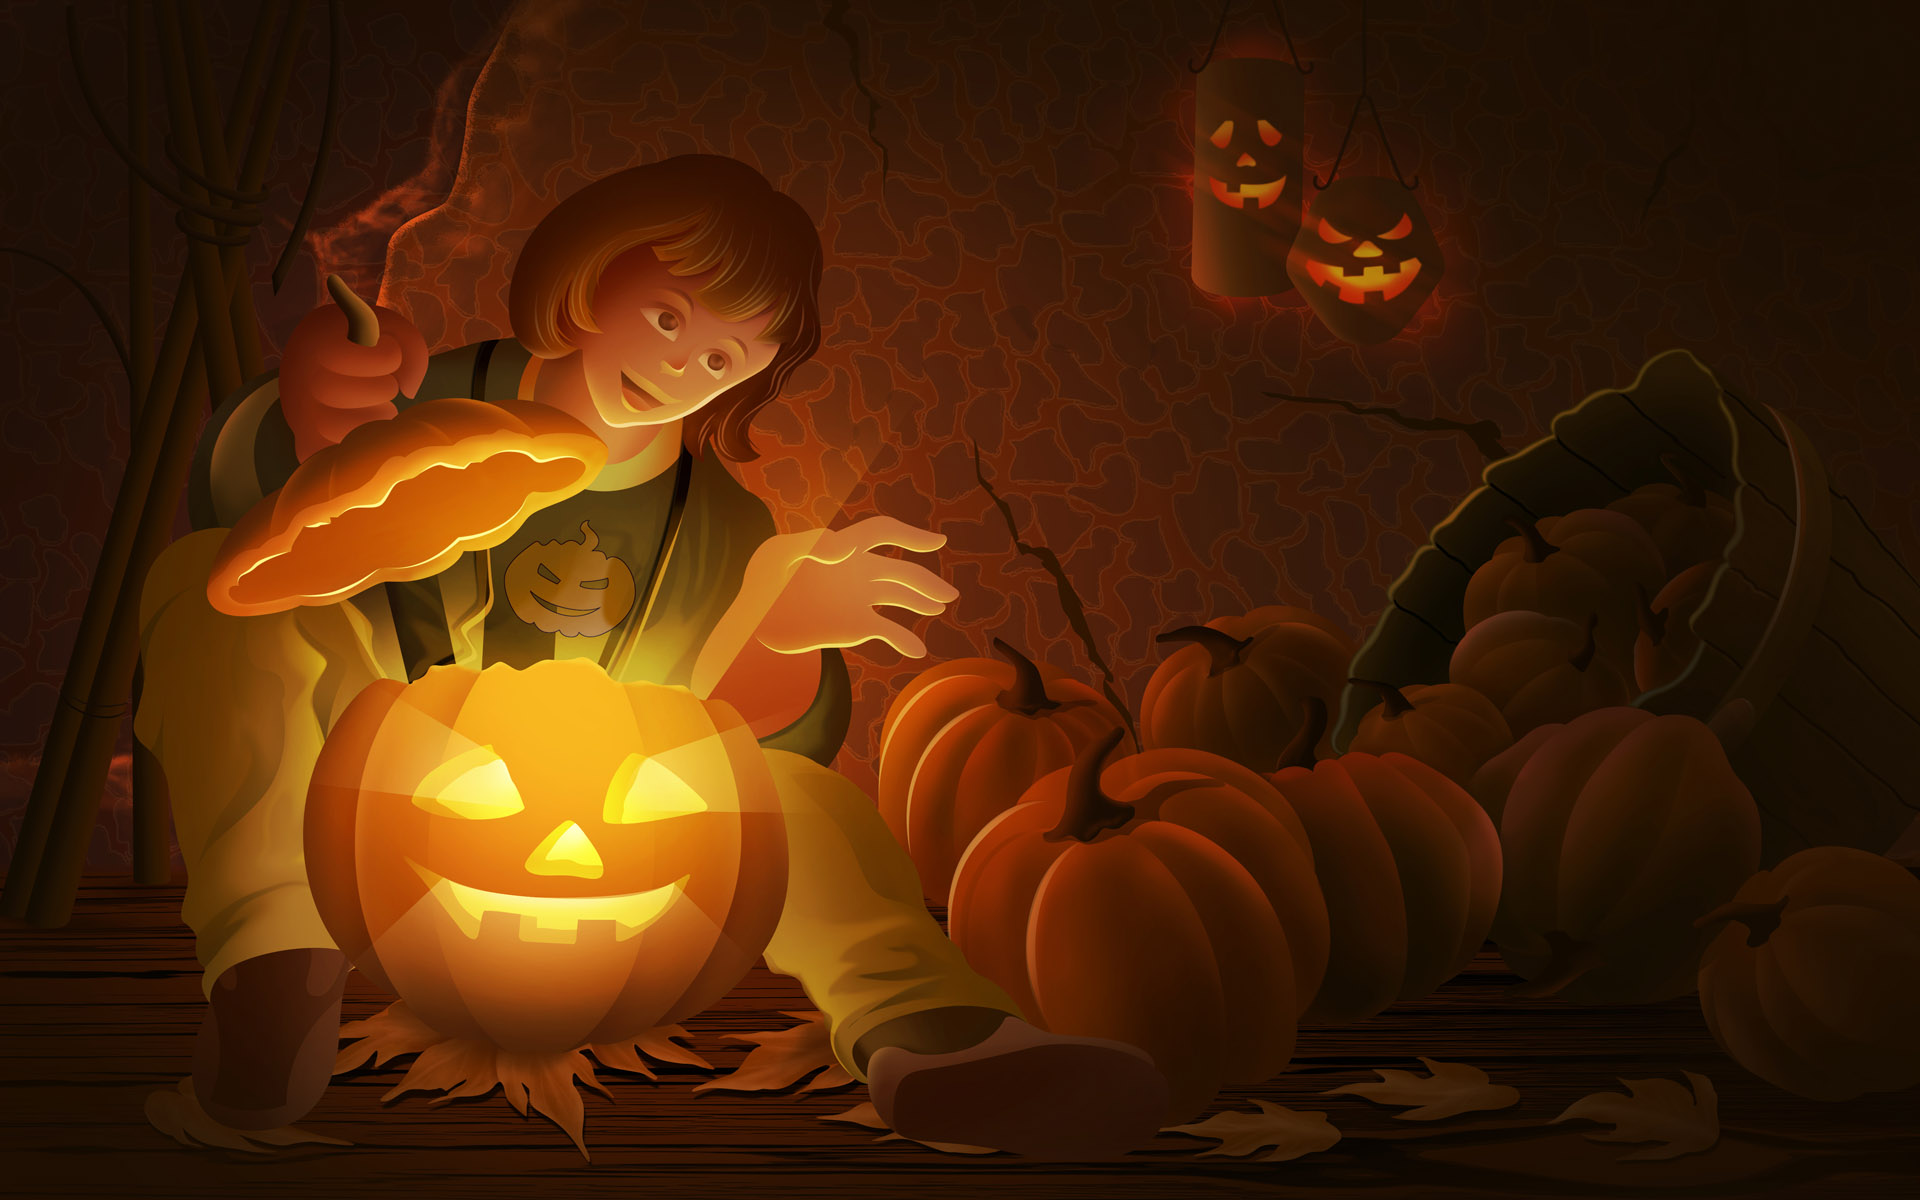 Pumpkin wallpapers and images   wallpapers pictures photos 1920x1200